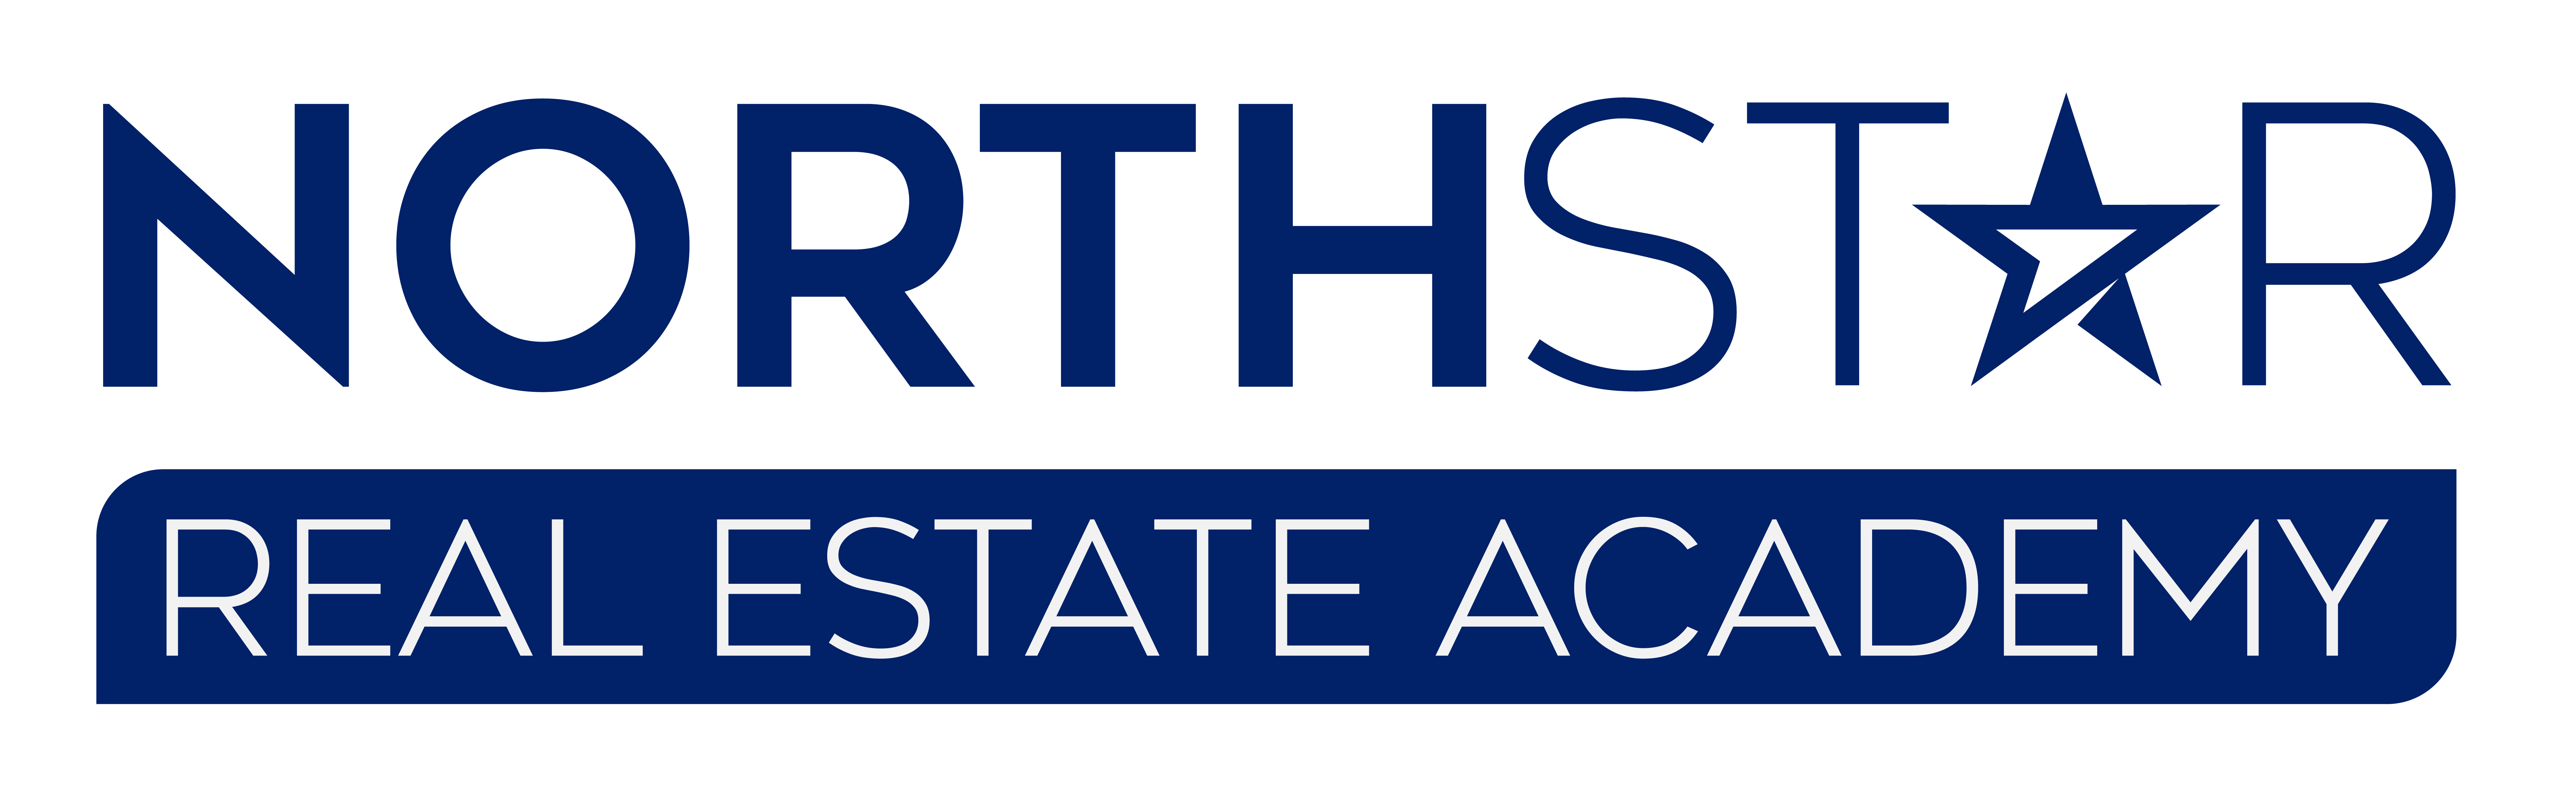 North Star real estate academy